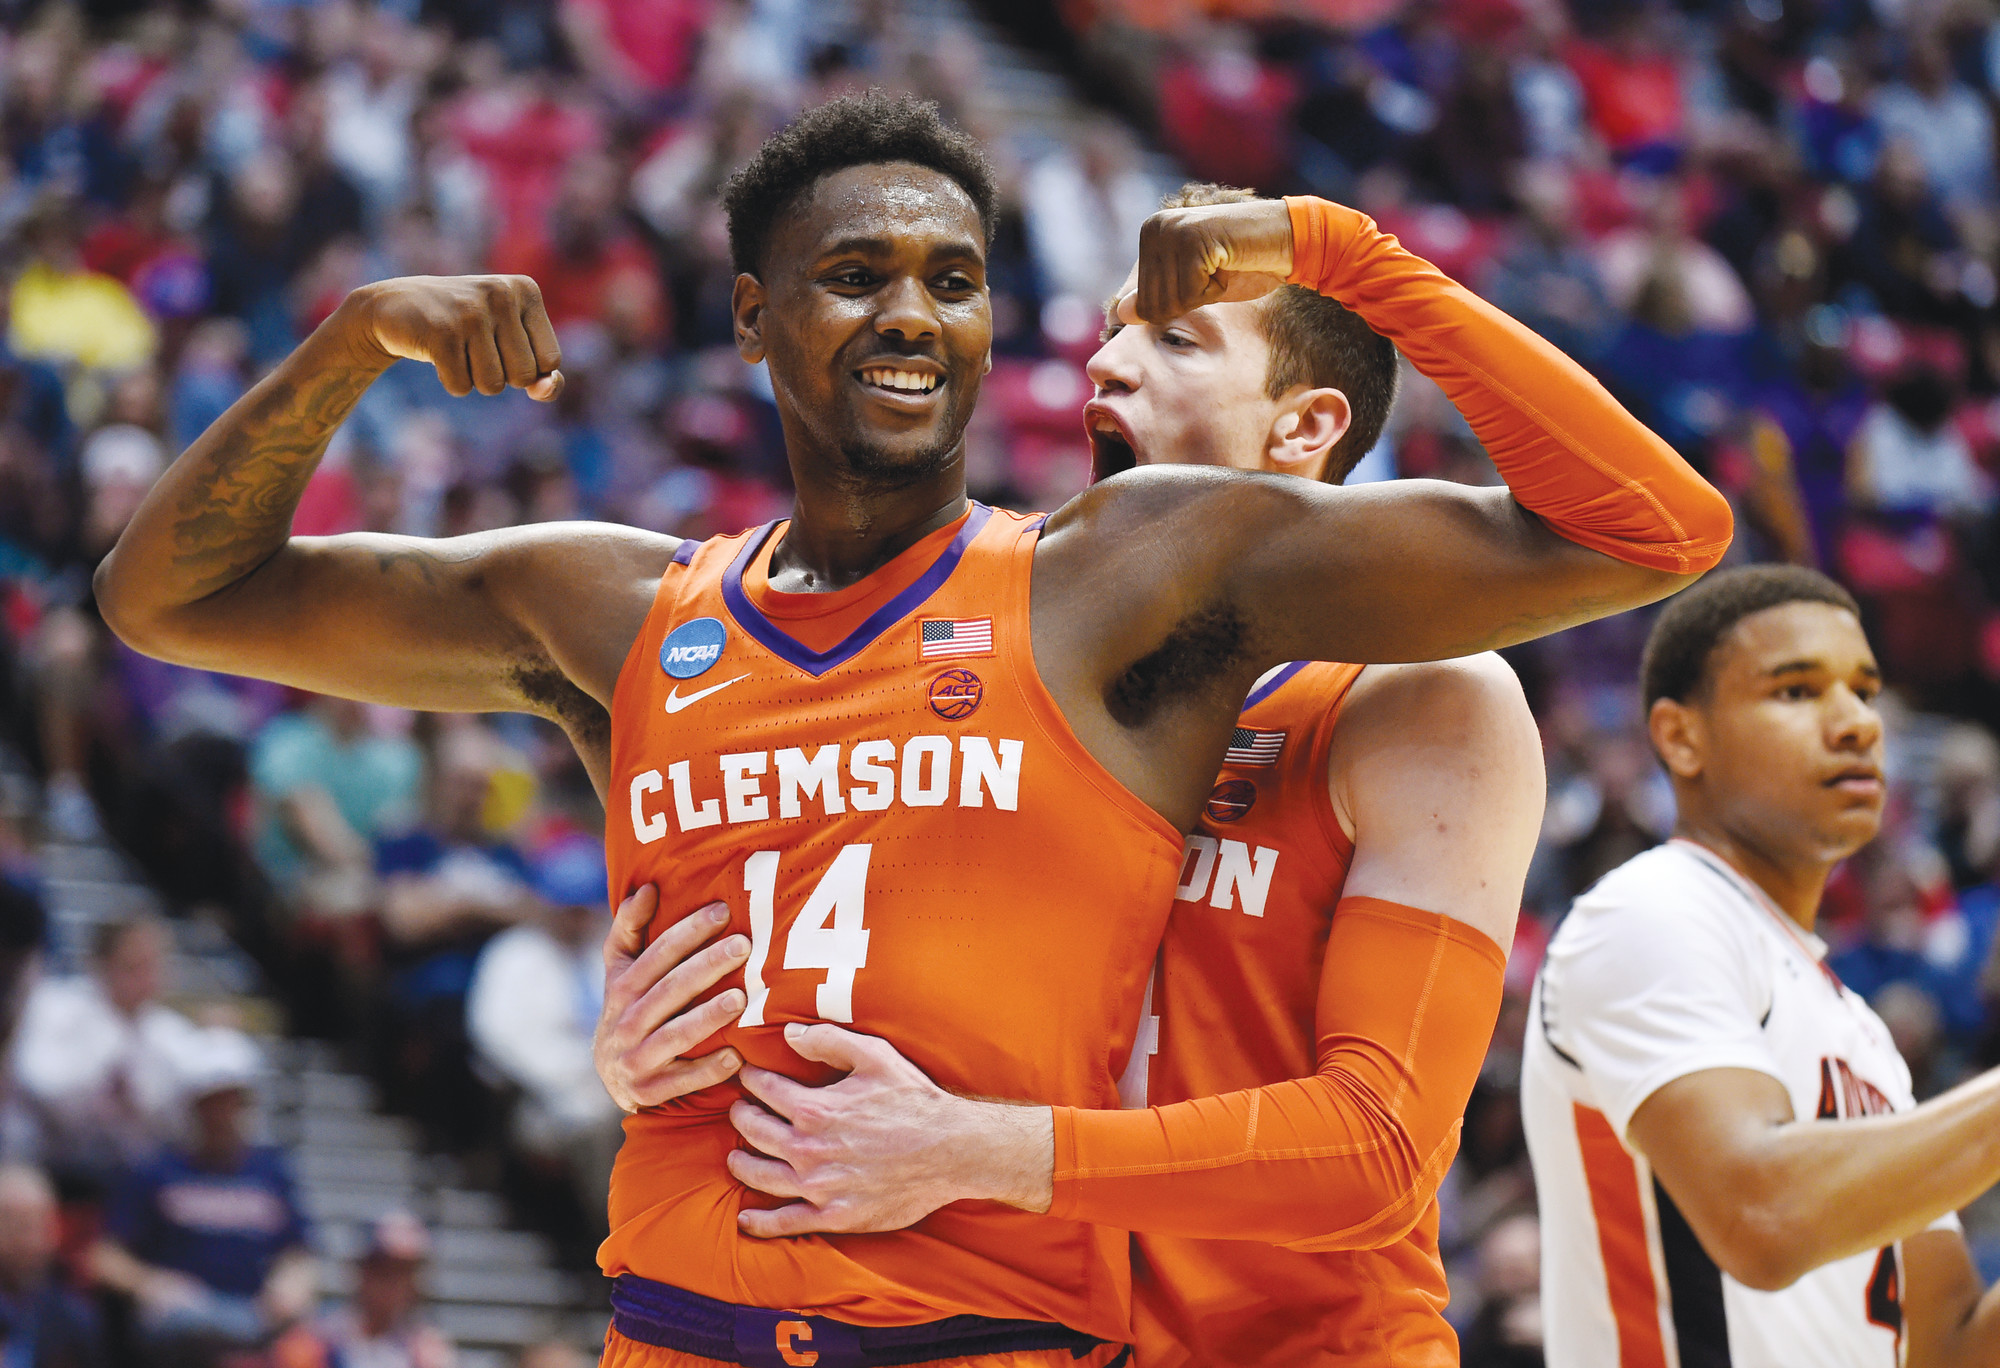 Clemson forward Elijah Thomas (14) celebrates a basket with forward David Skara during the Tigers' 84-53 victory over Auburn on Sunday in the second round of the NCAA tournament in San Diego. Clemson will face No. 1 Kansas on Friday in Omaha, Nebraska, in the Sweet 16.